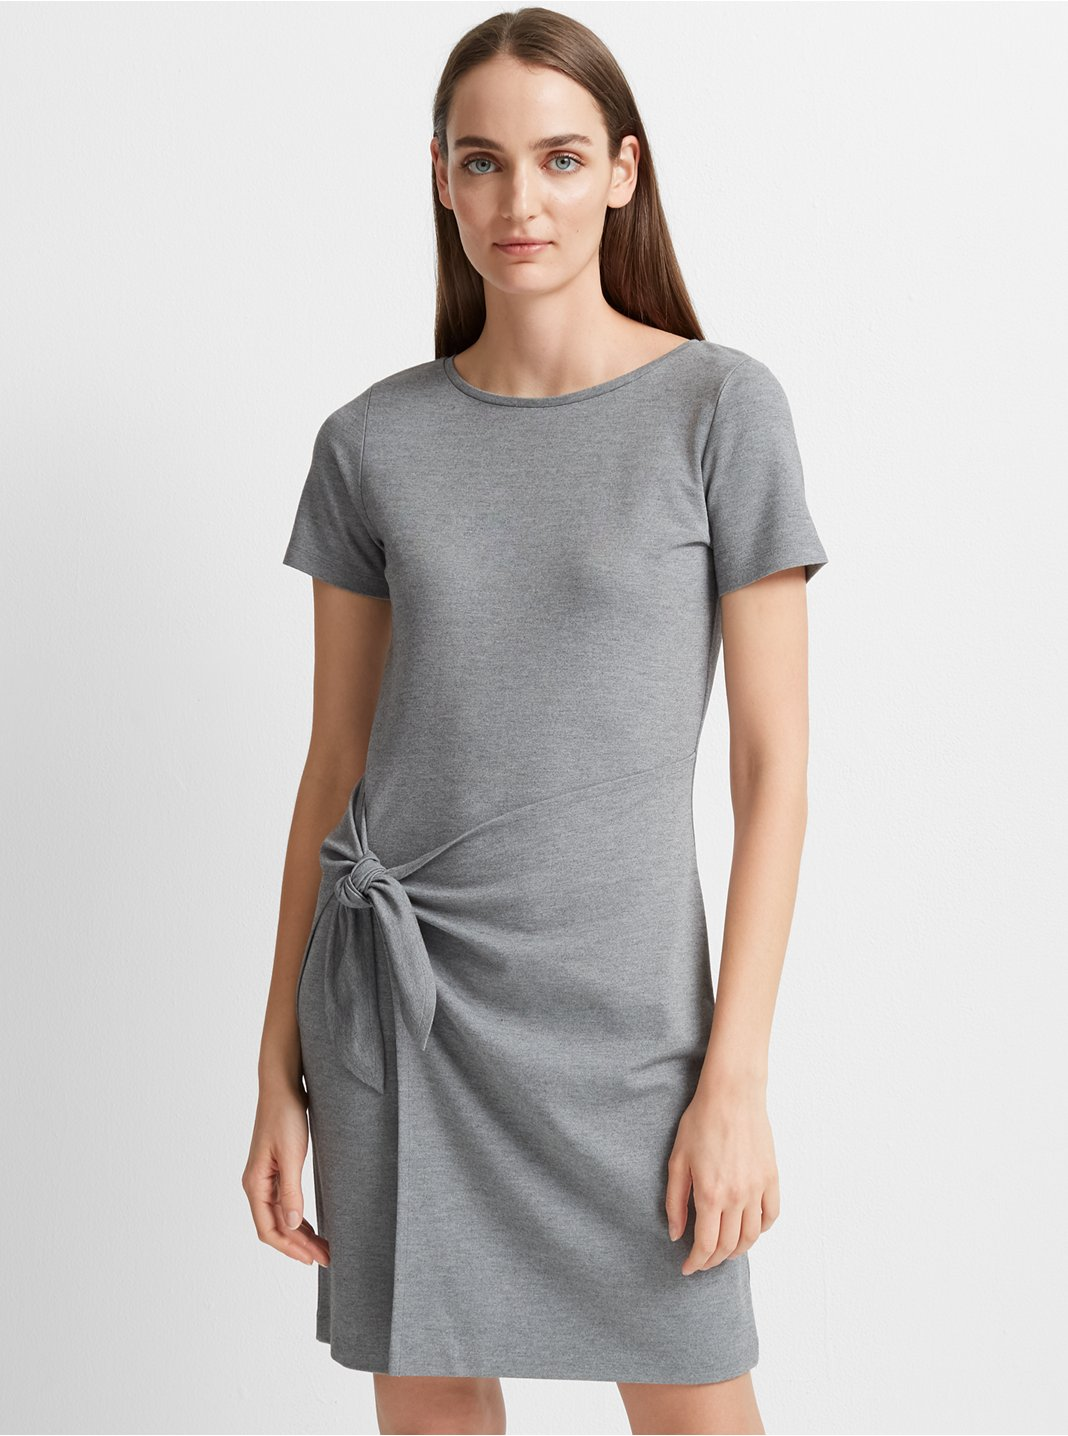 da1715b7d52 Womens Dresses | Club Monaco